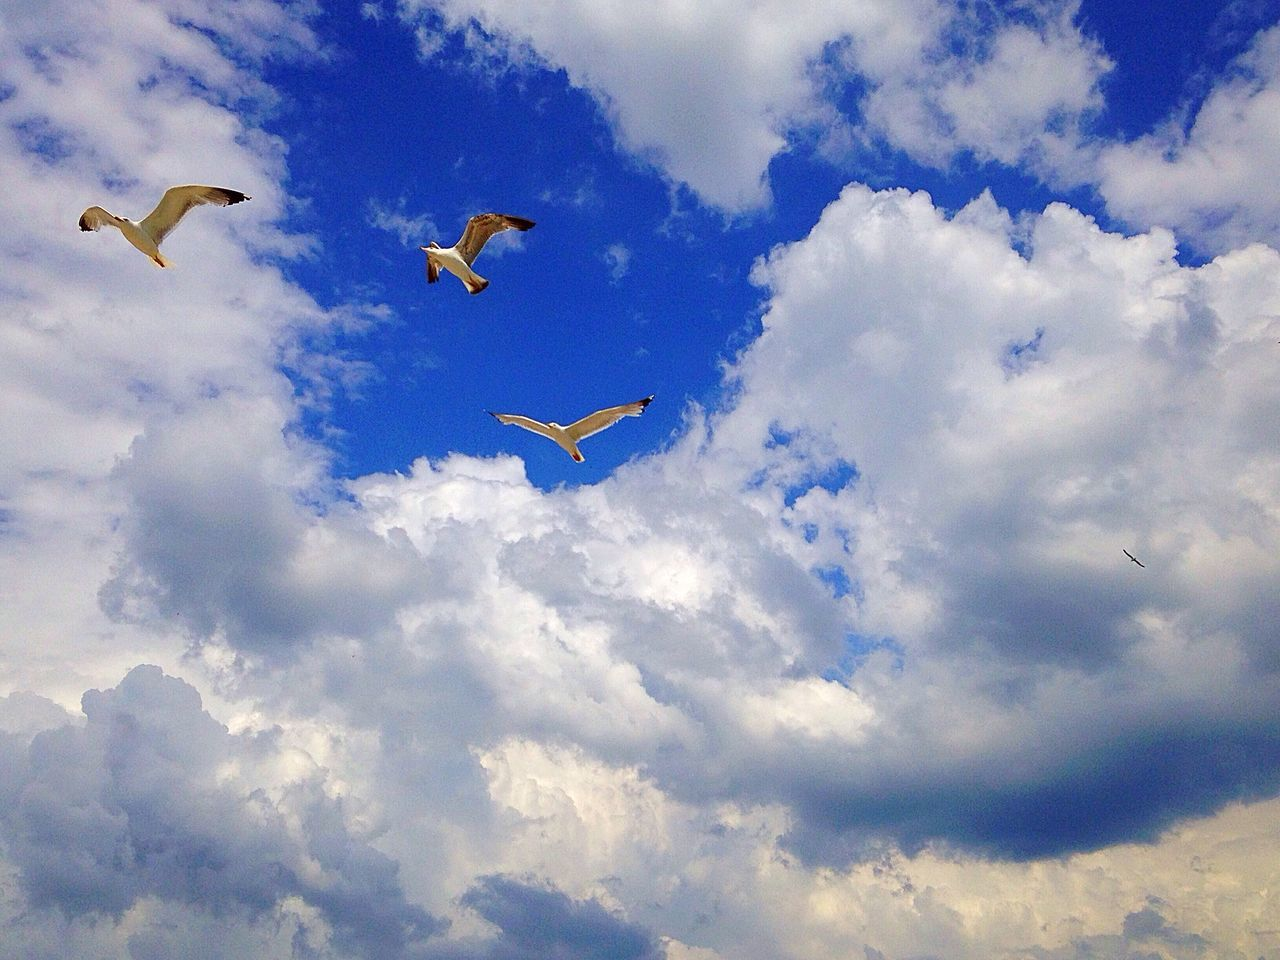 Flight🕊🕊 Gull Gulls Flight Fly Summer 82/100happydays Sea Sky Skyporn Nature IPhoneography IPhone5 Iphoneonly Landscape Sky_collection Sky And Clouds Sea And Sky Birds Blue MyPhotography